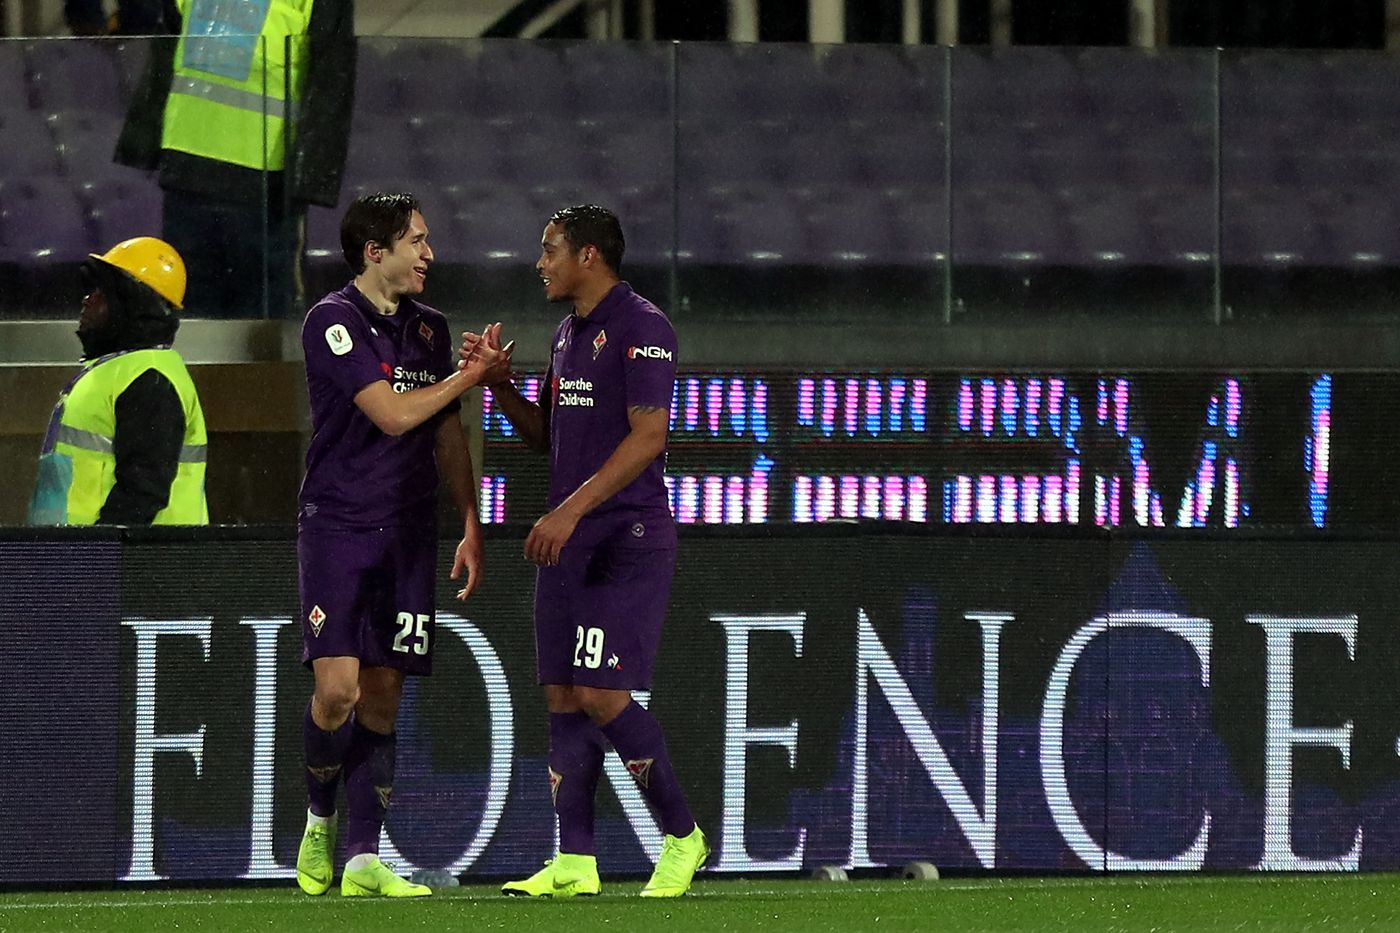 Udinese Vs Fiorentina Lineups And How To Watch Viola Nation